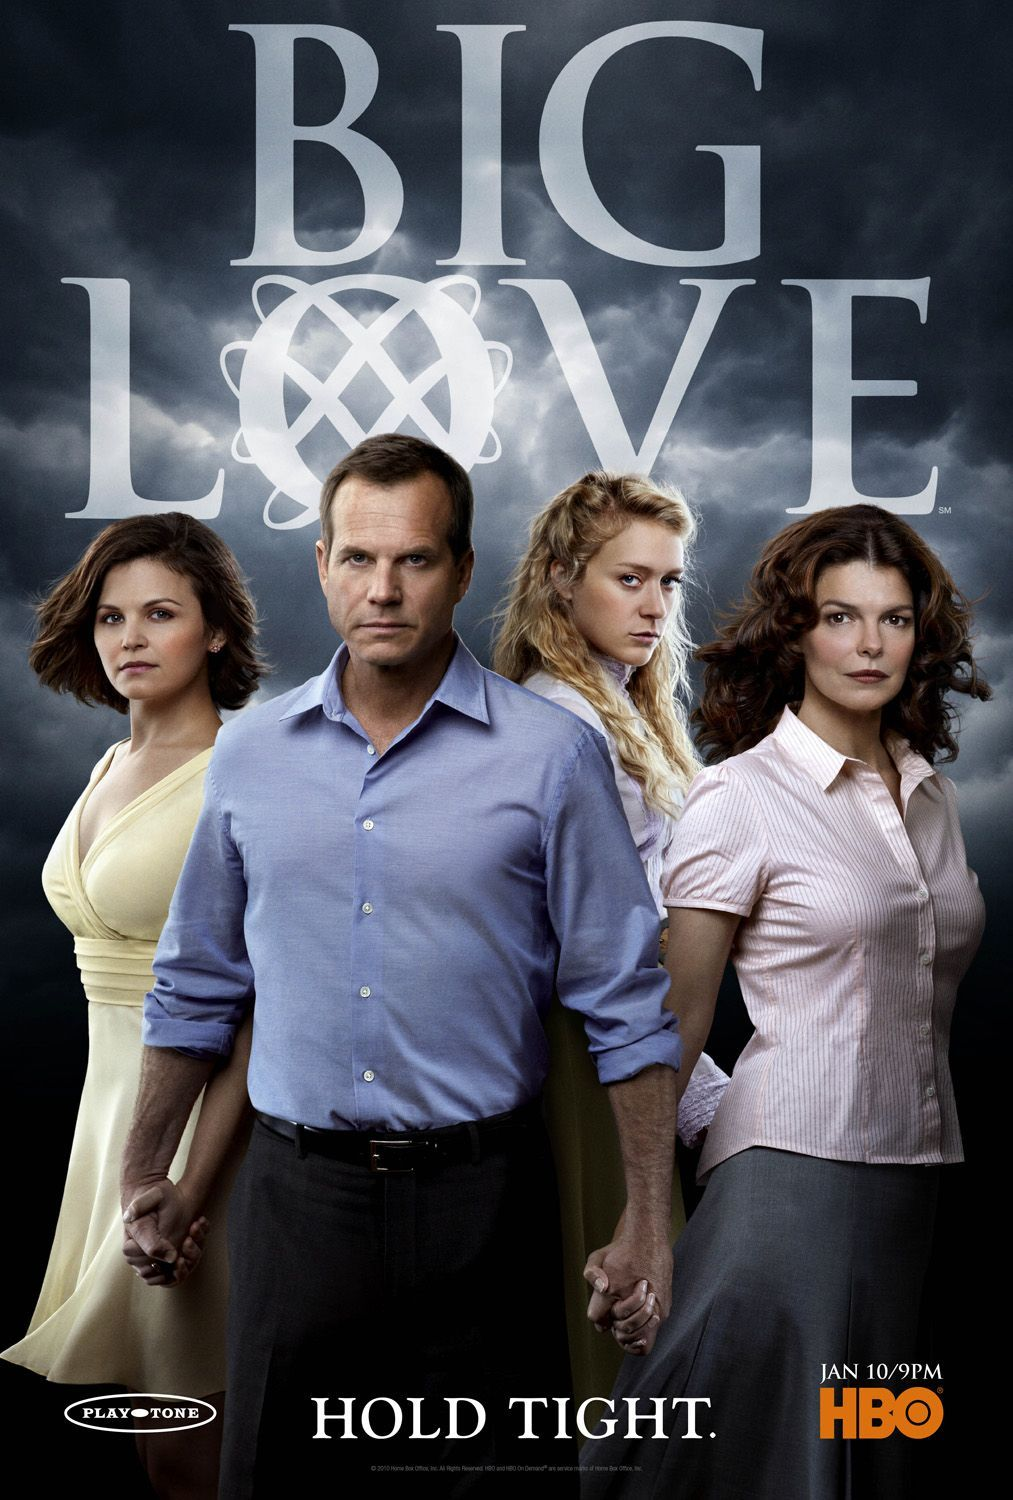 BIG LOVE American television drama that aired on HBO